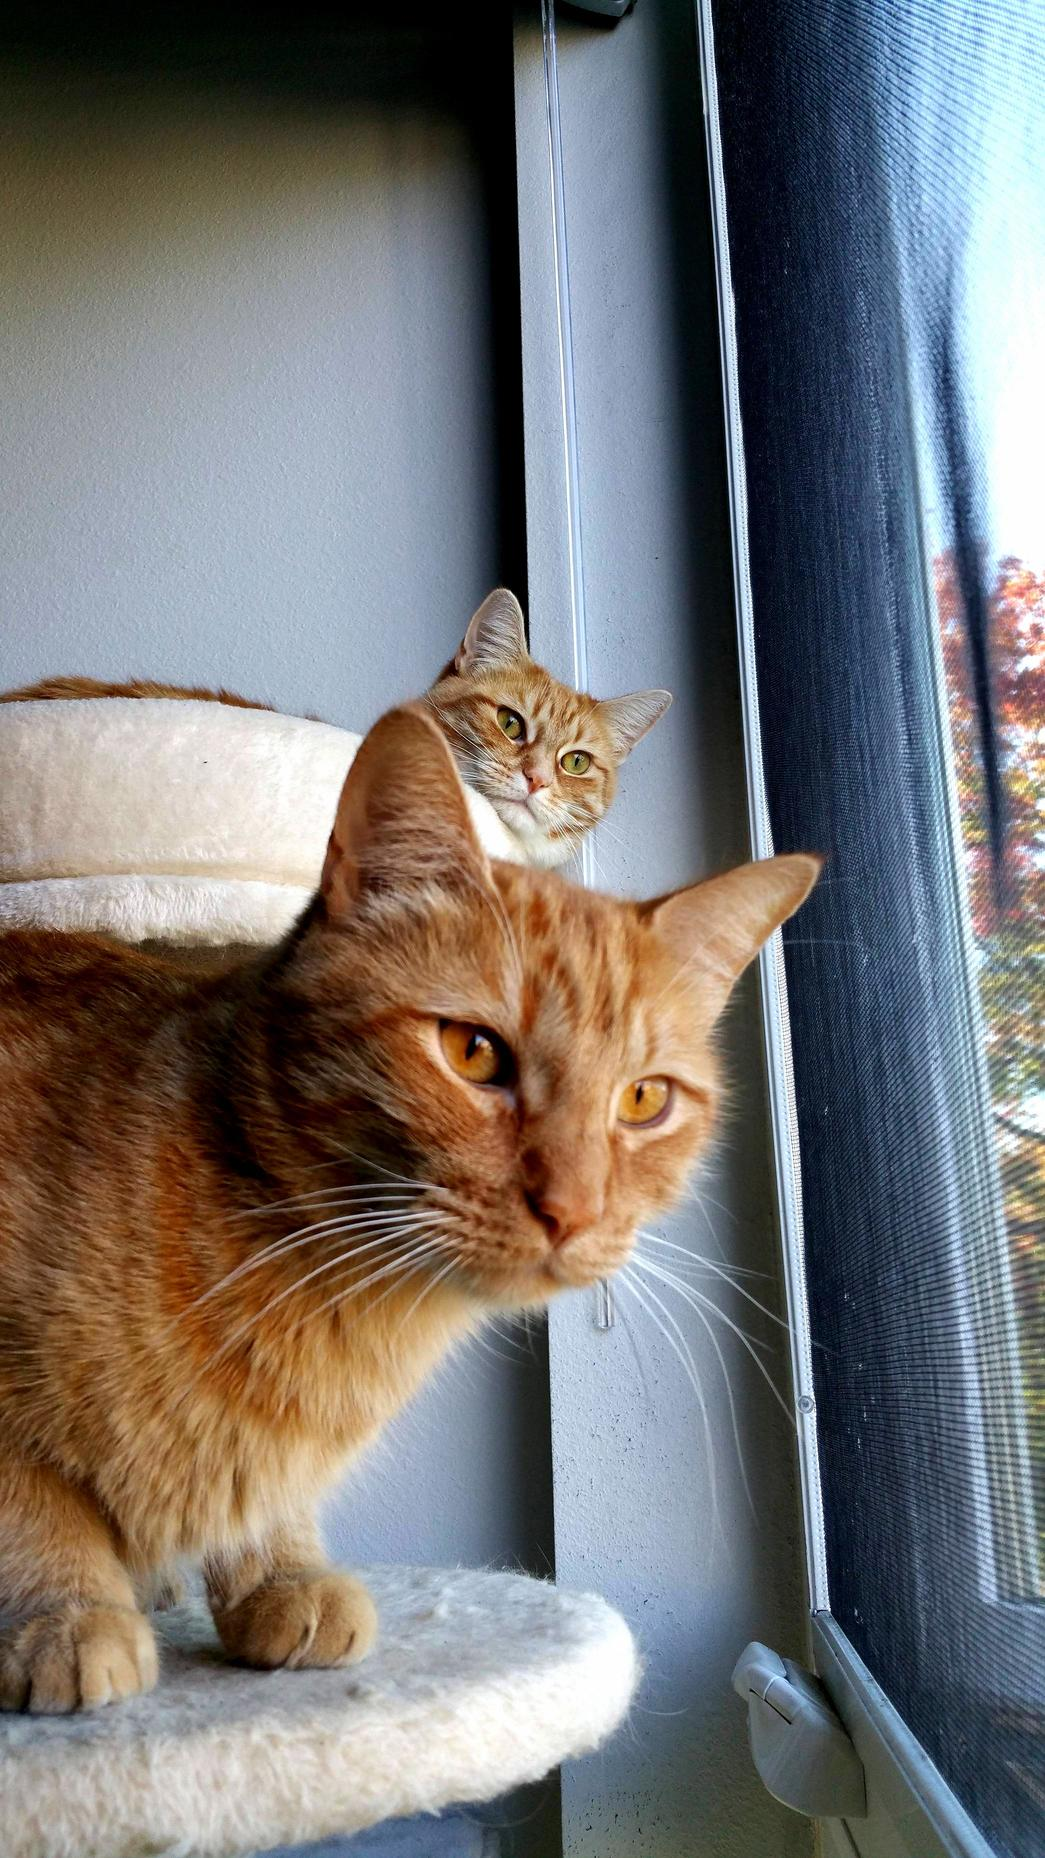 Oliver and olivia love their morning window time